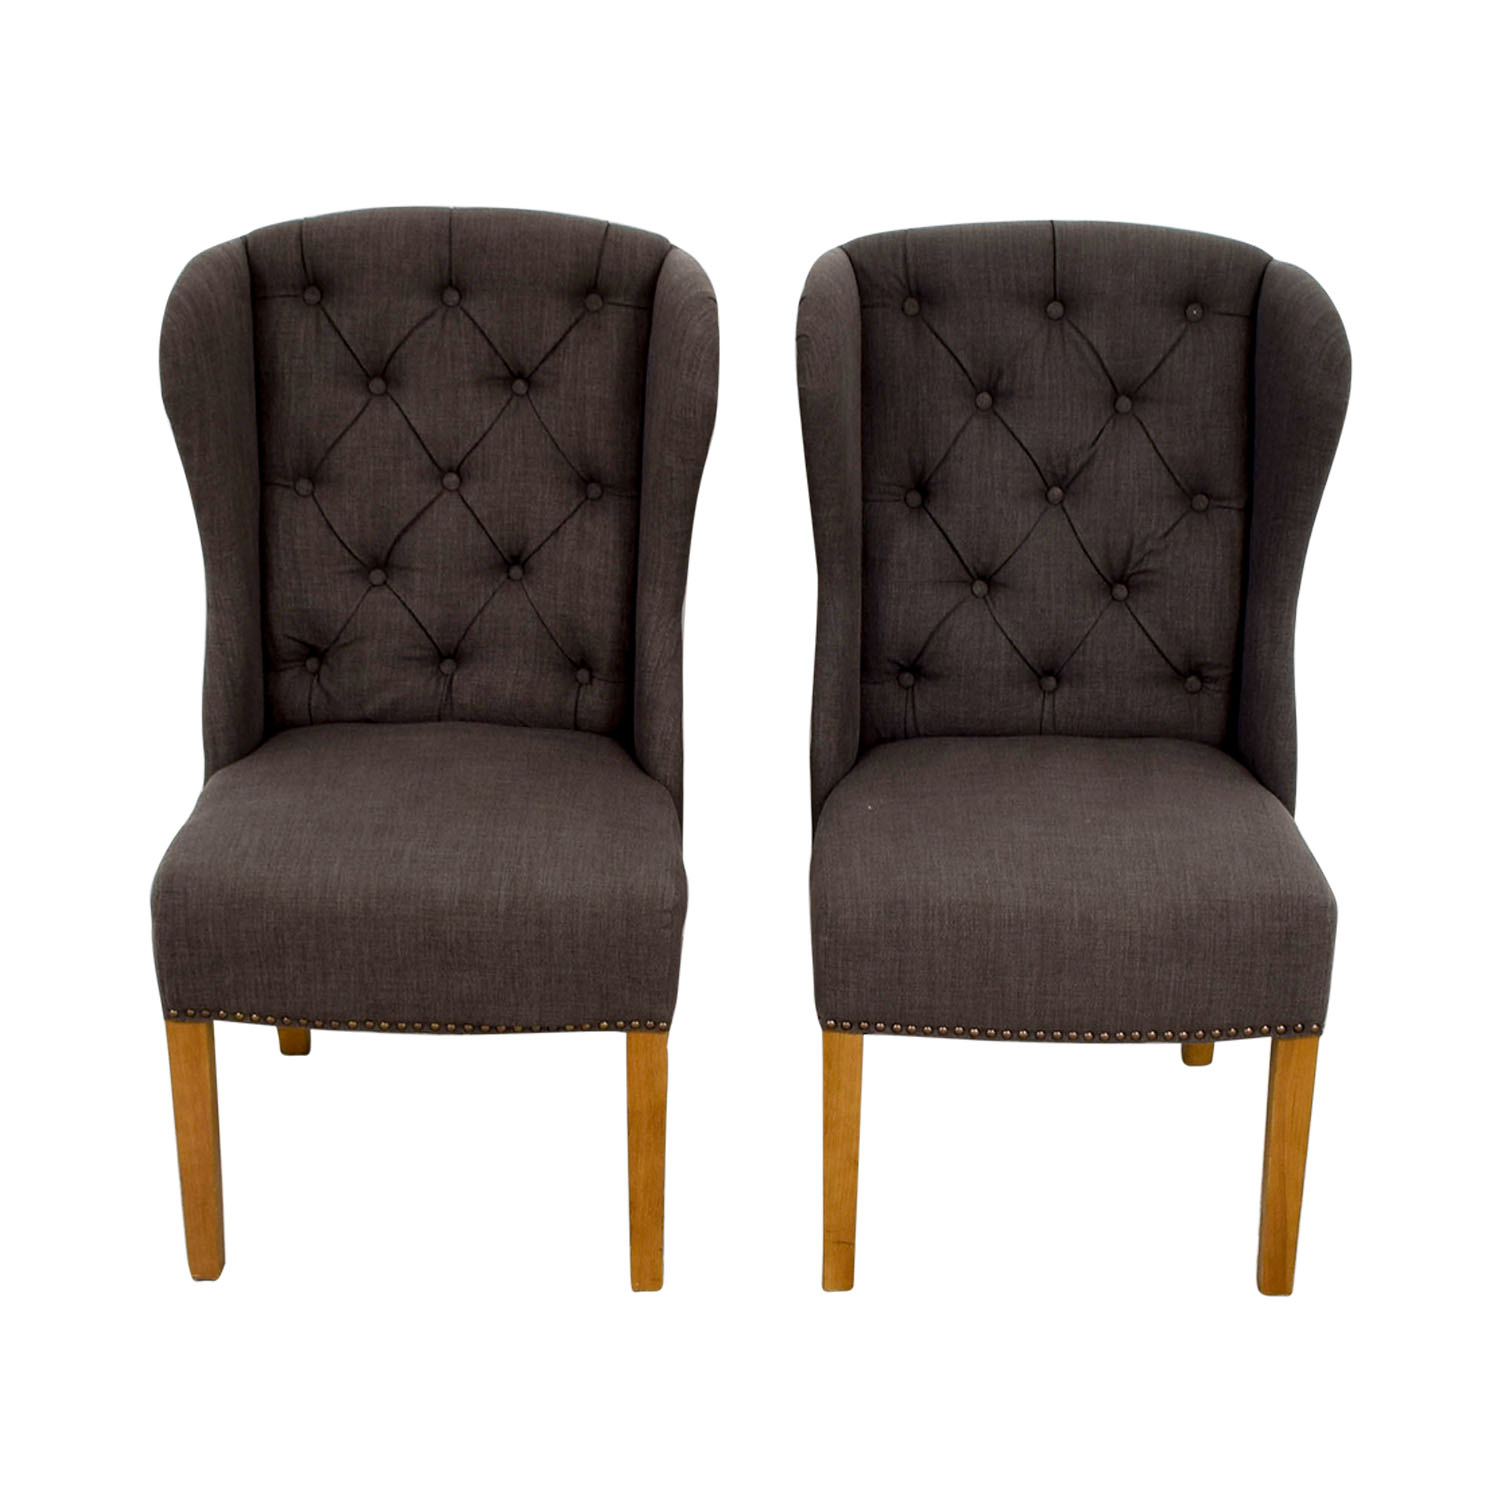 OFF Greyson Greyson Grey Tufted Chairs Chairs